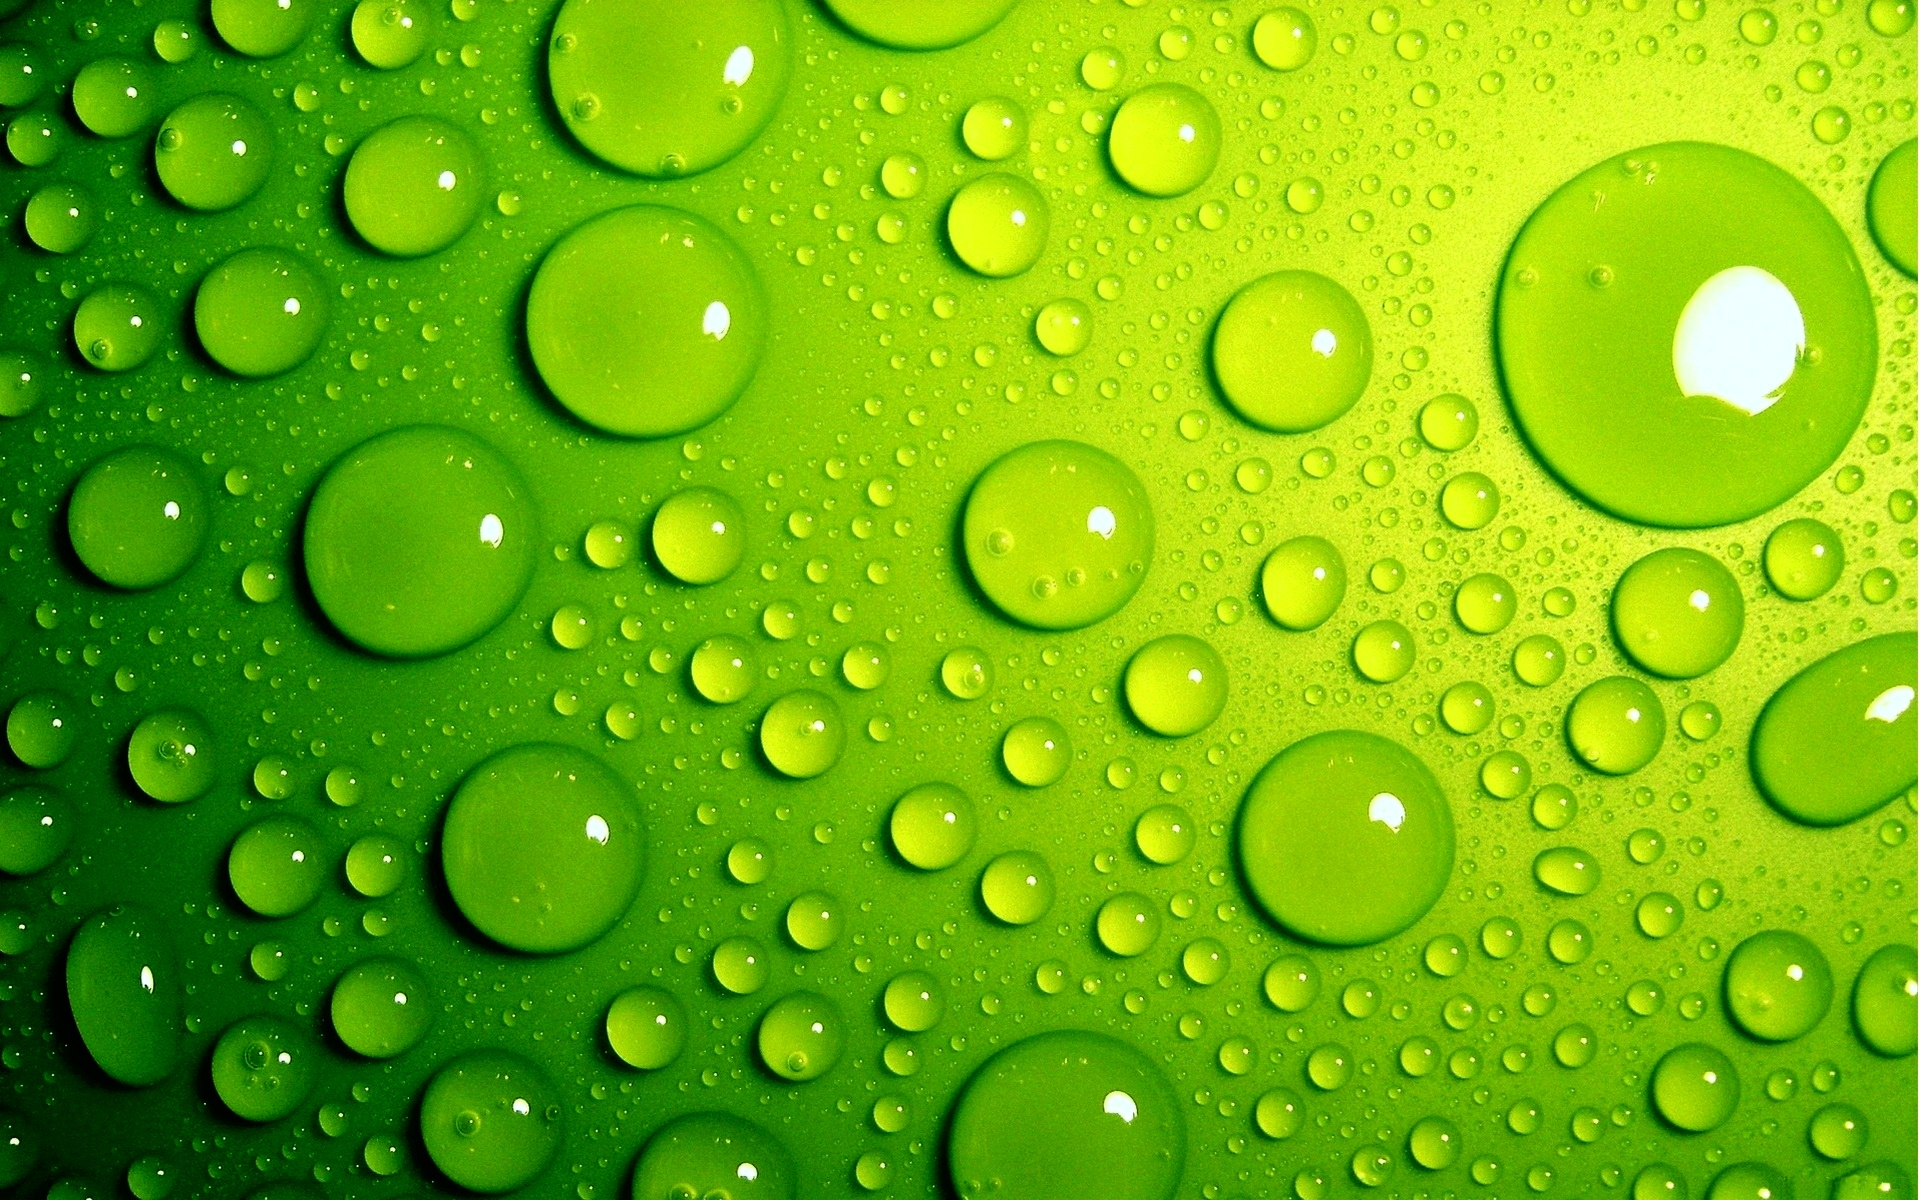 Green Wallpaper HD